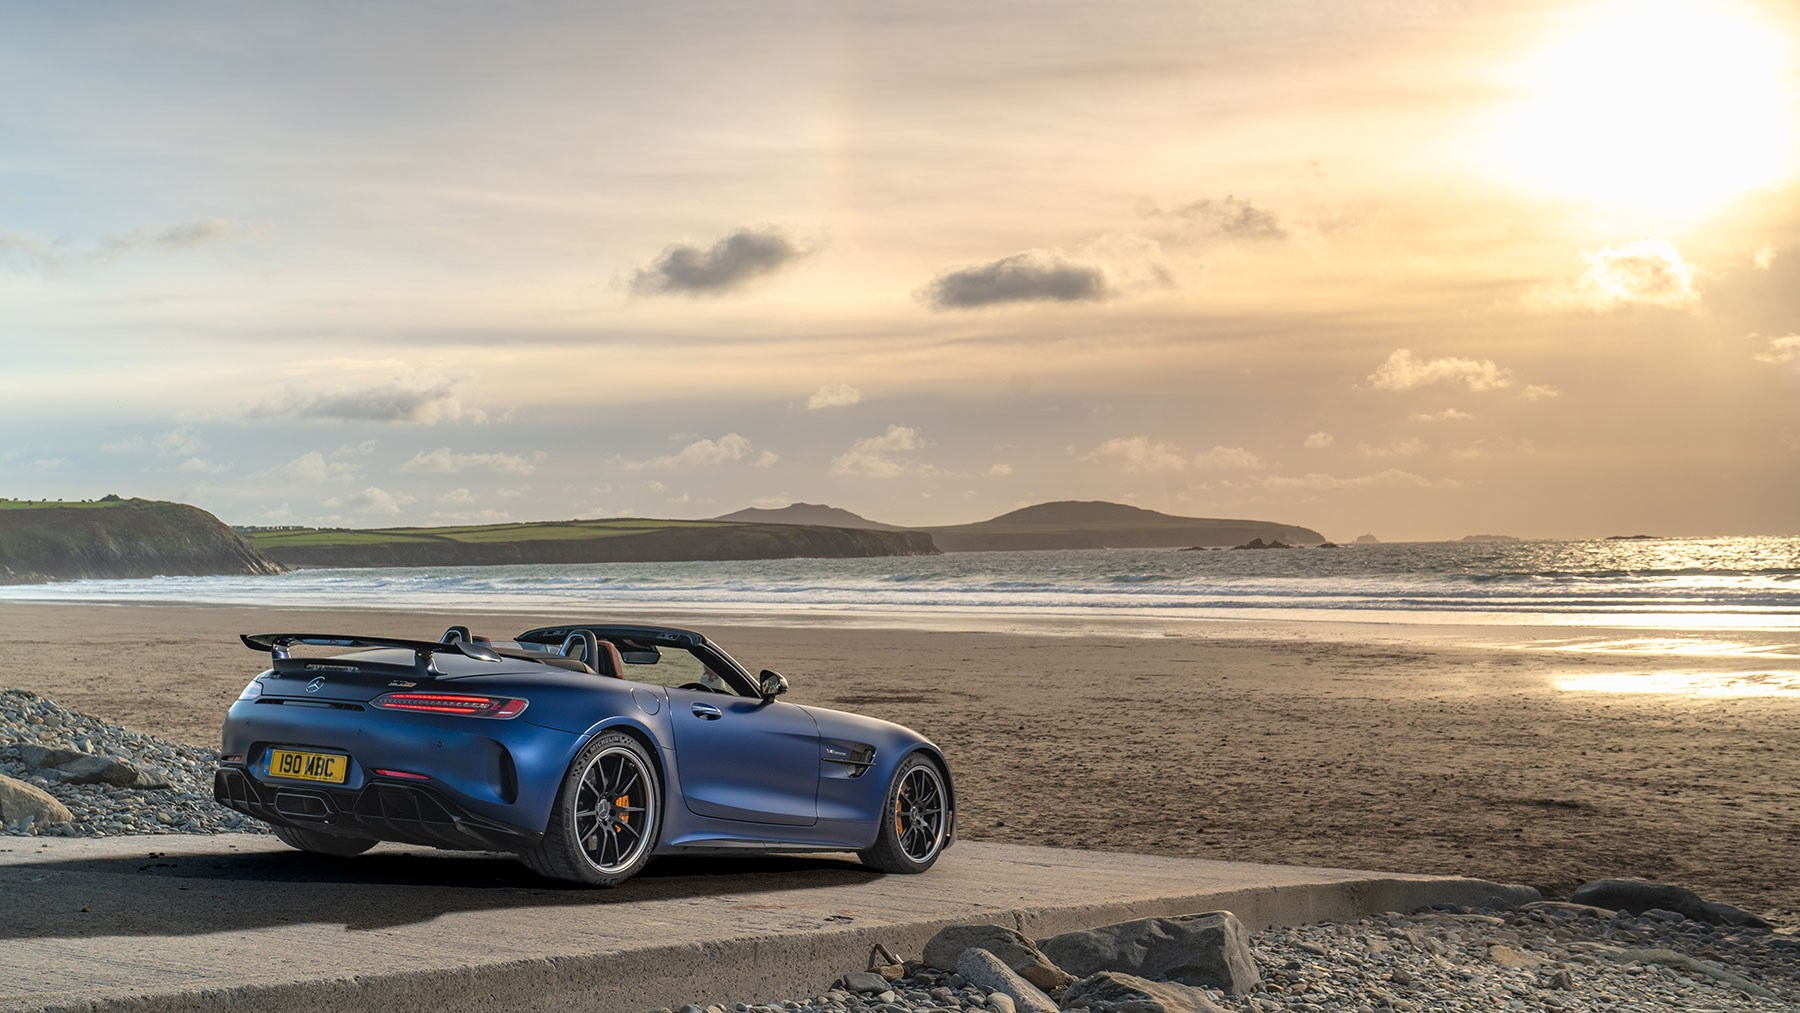 Mercedes-AMG GT R Roadster price is £178,675